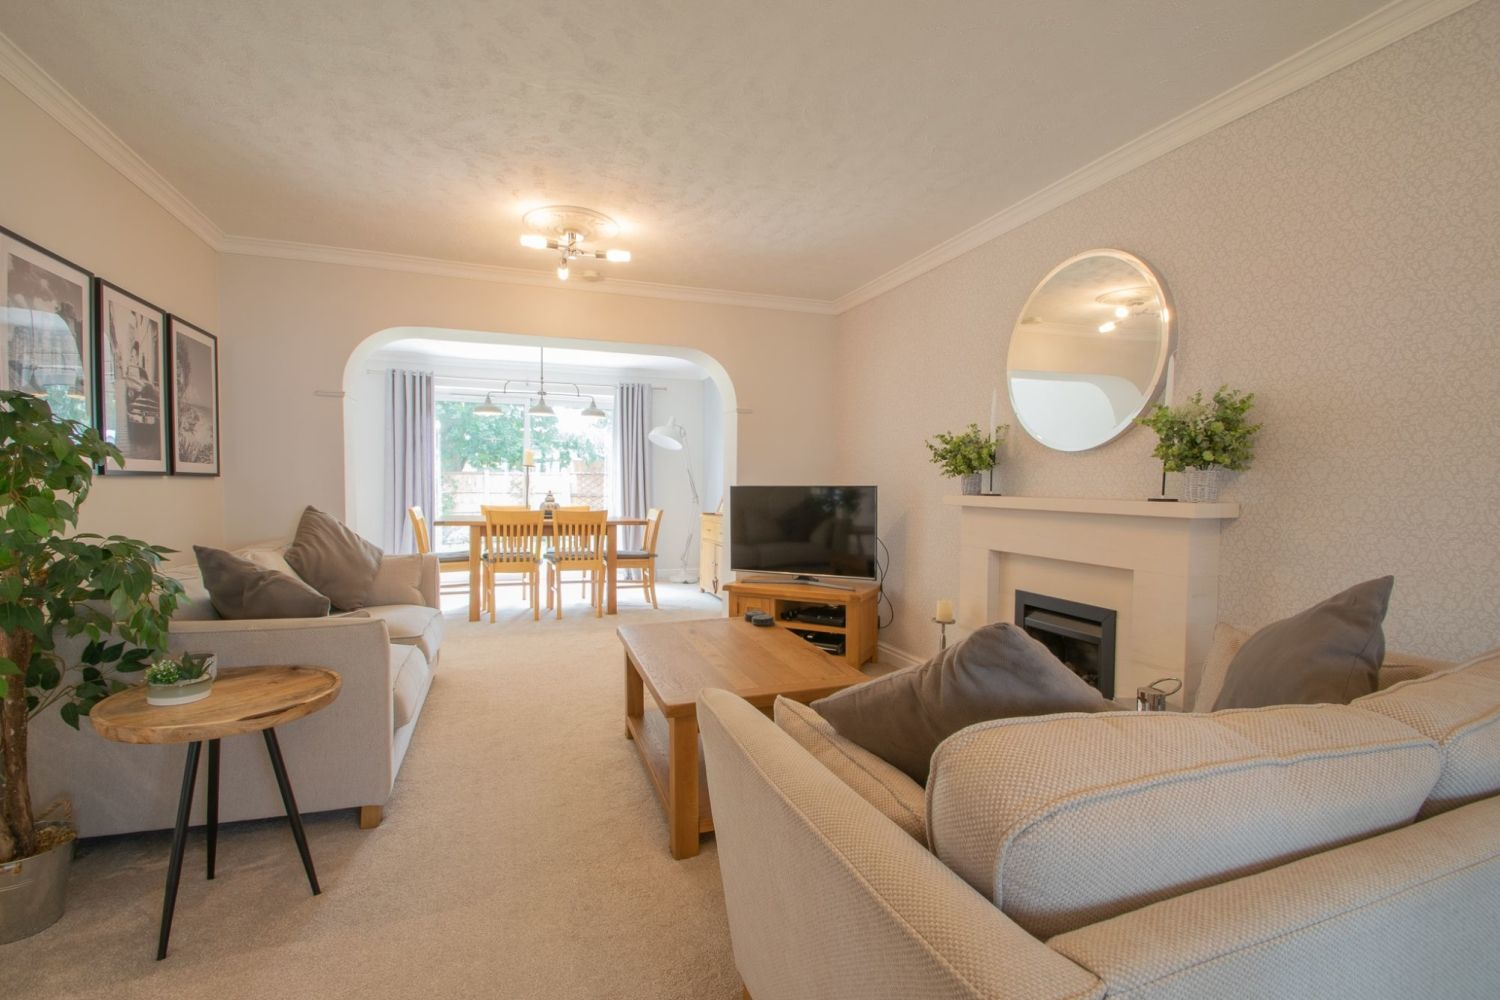 3 bed detached for sale in Clyde Avenue, Halesowen  - Property Image 3